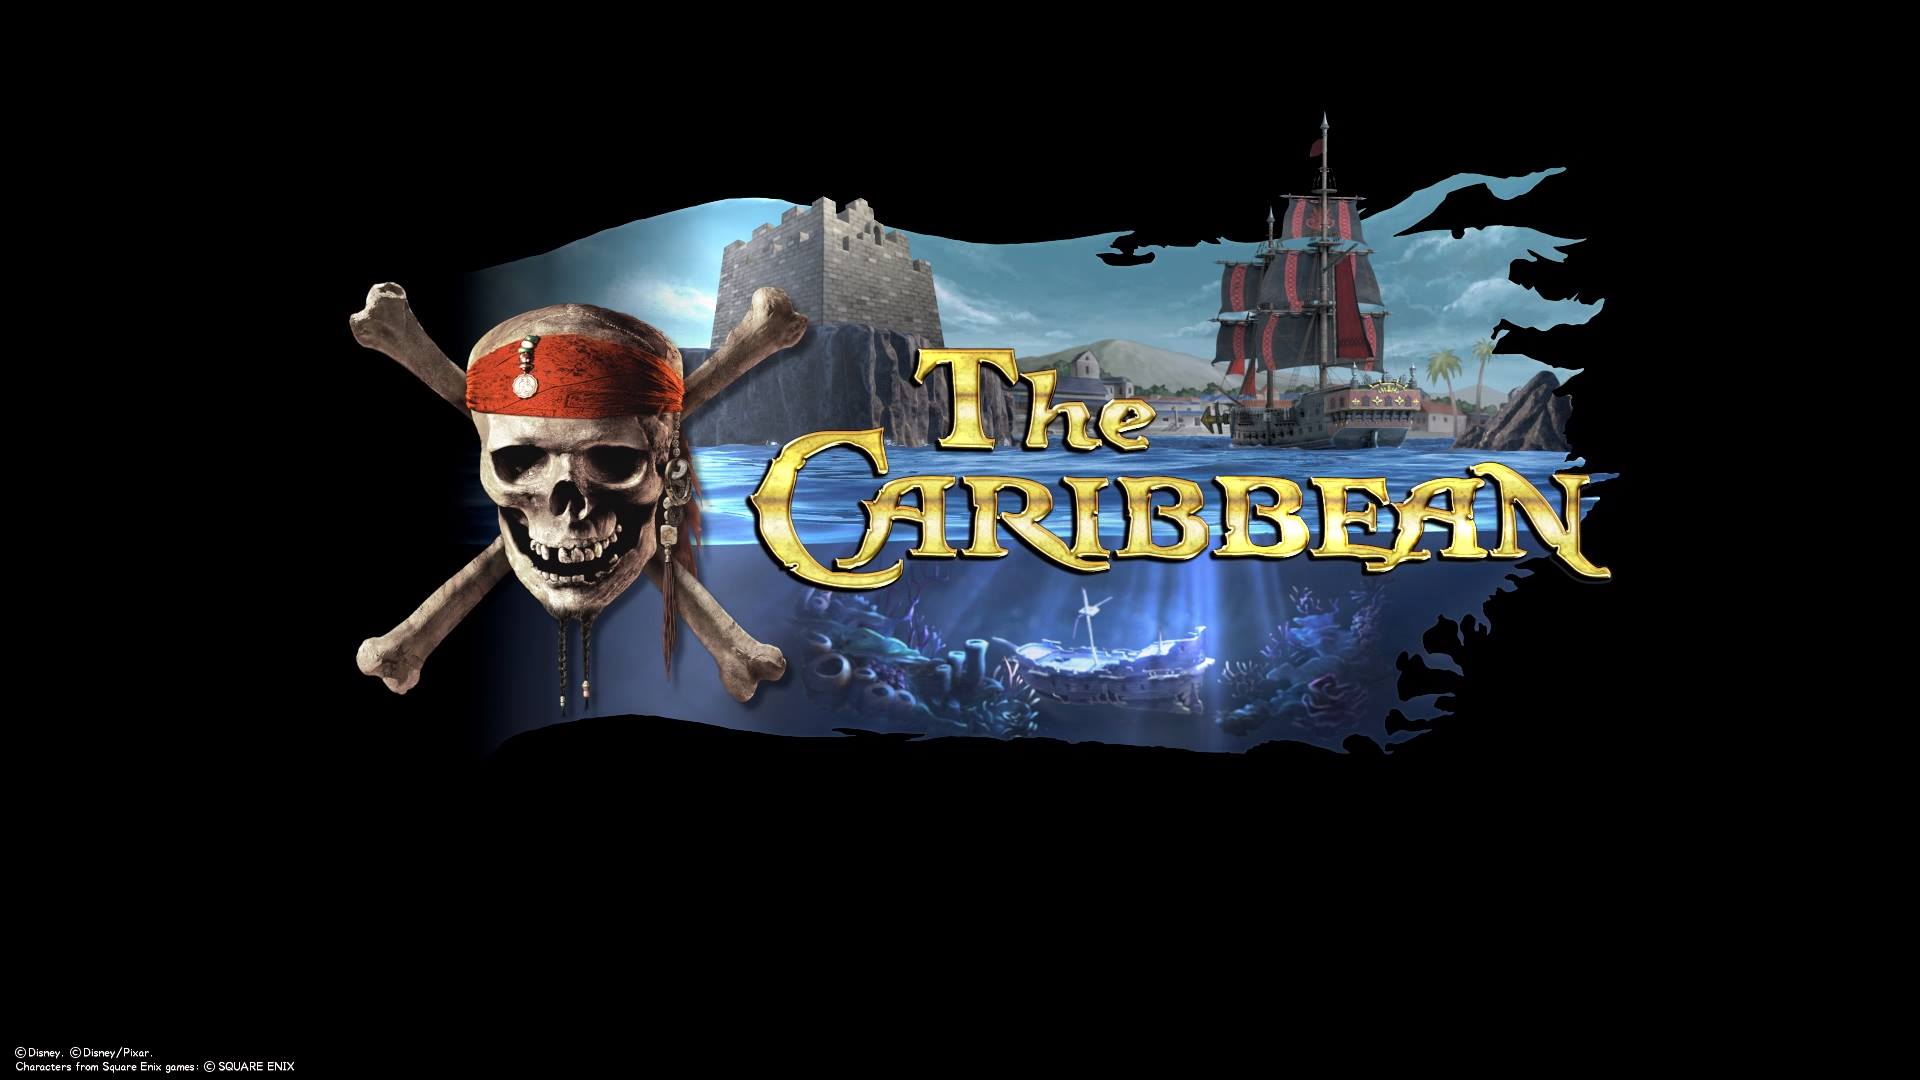 The 7th world that unlocks in Kingdom Hearts 3 is The Caribbean.